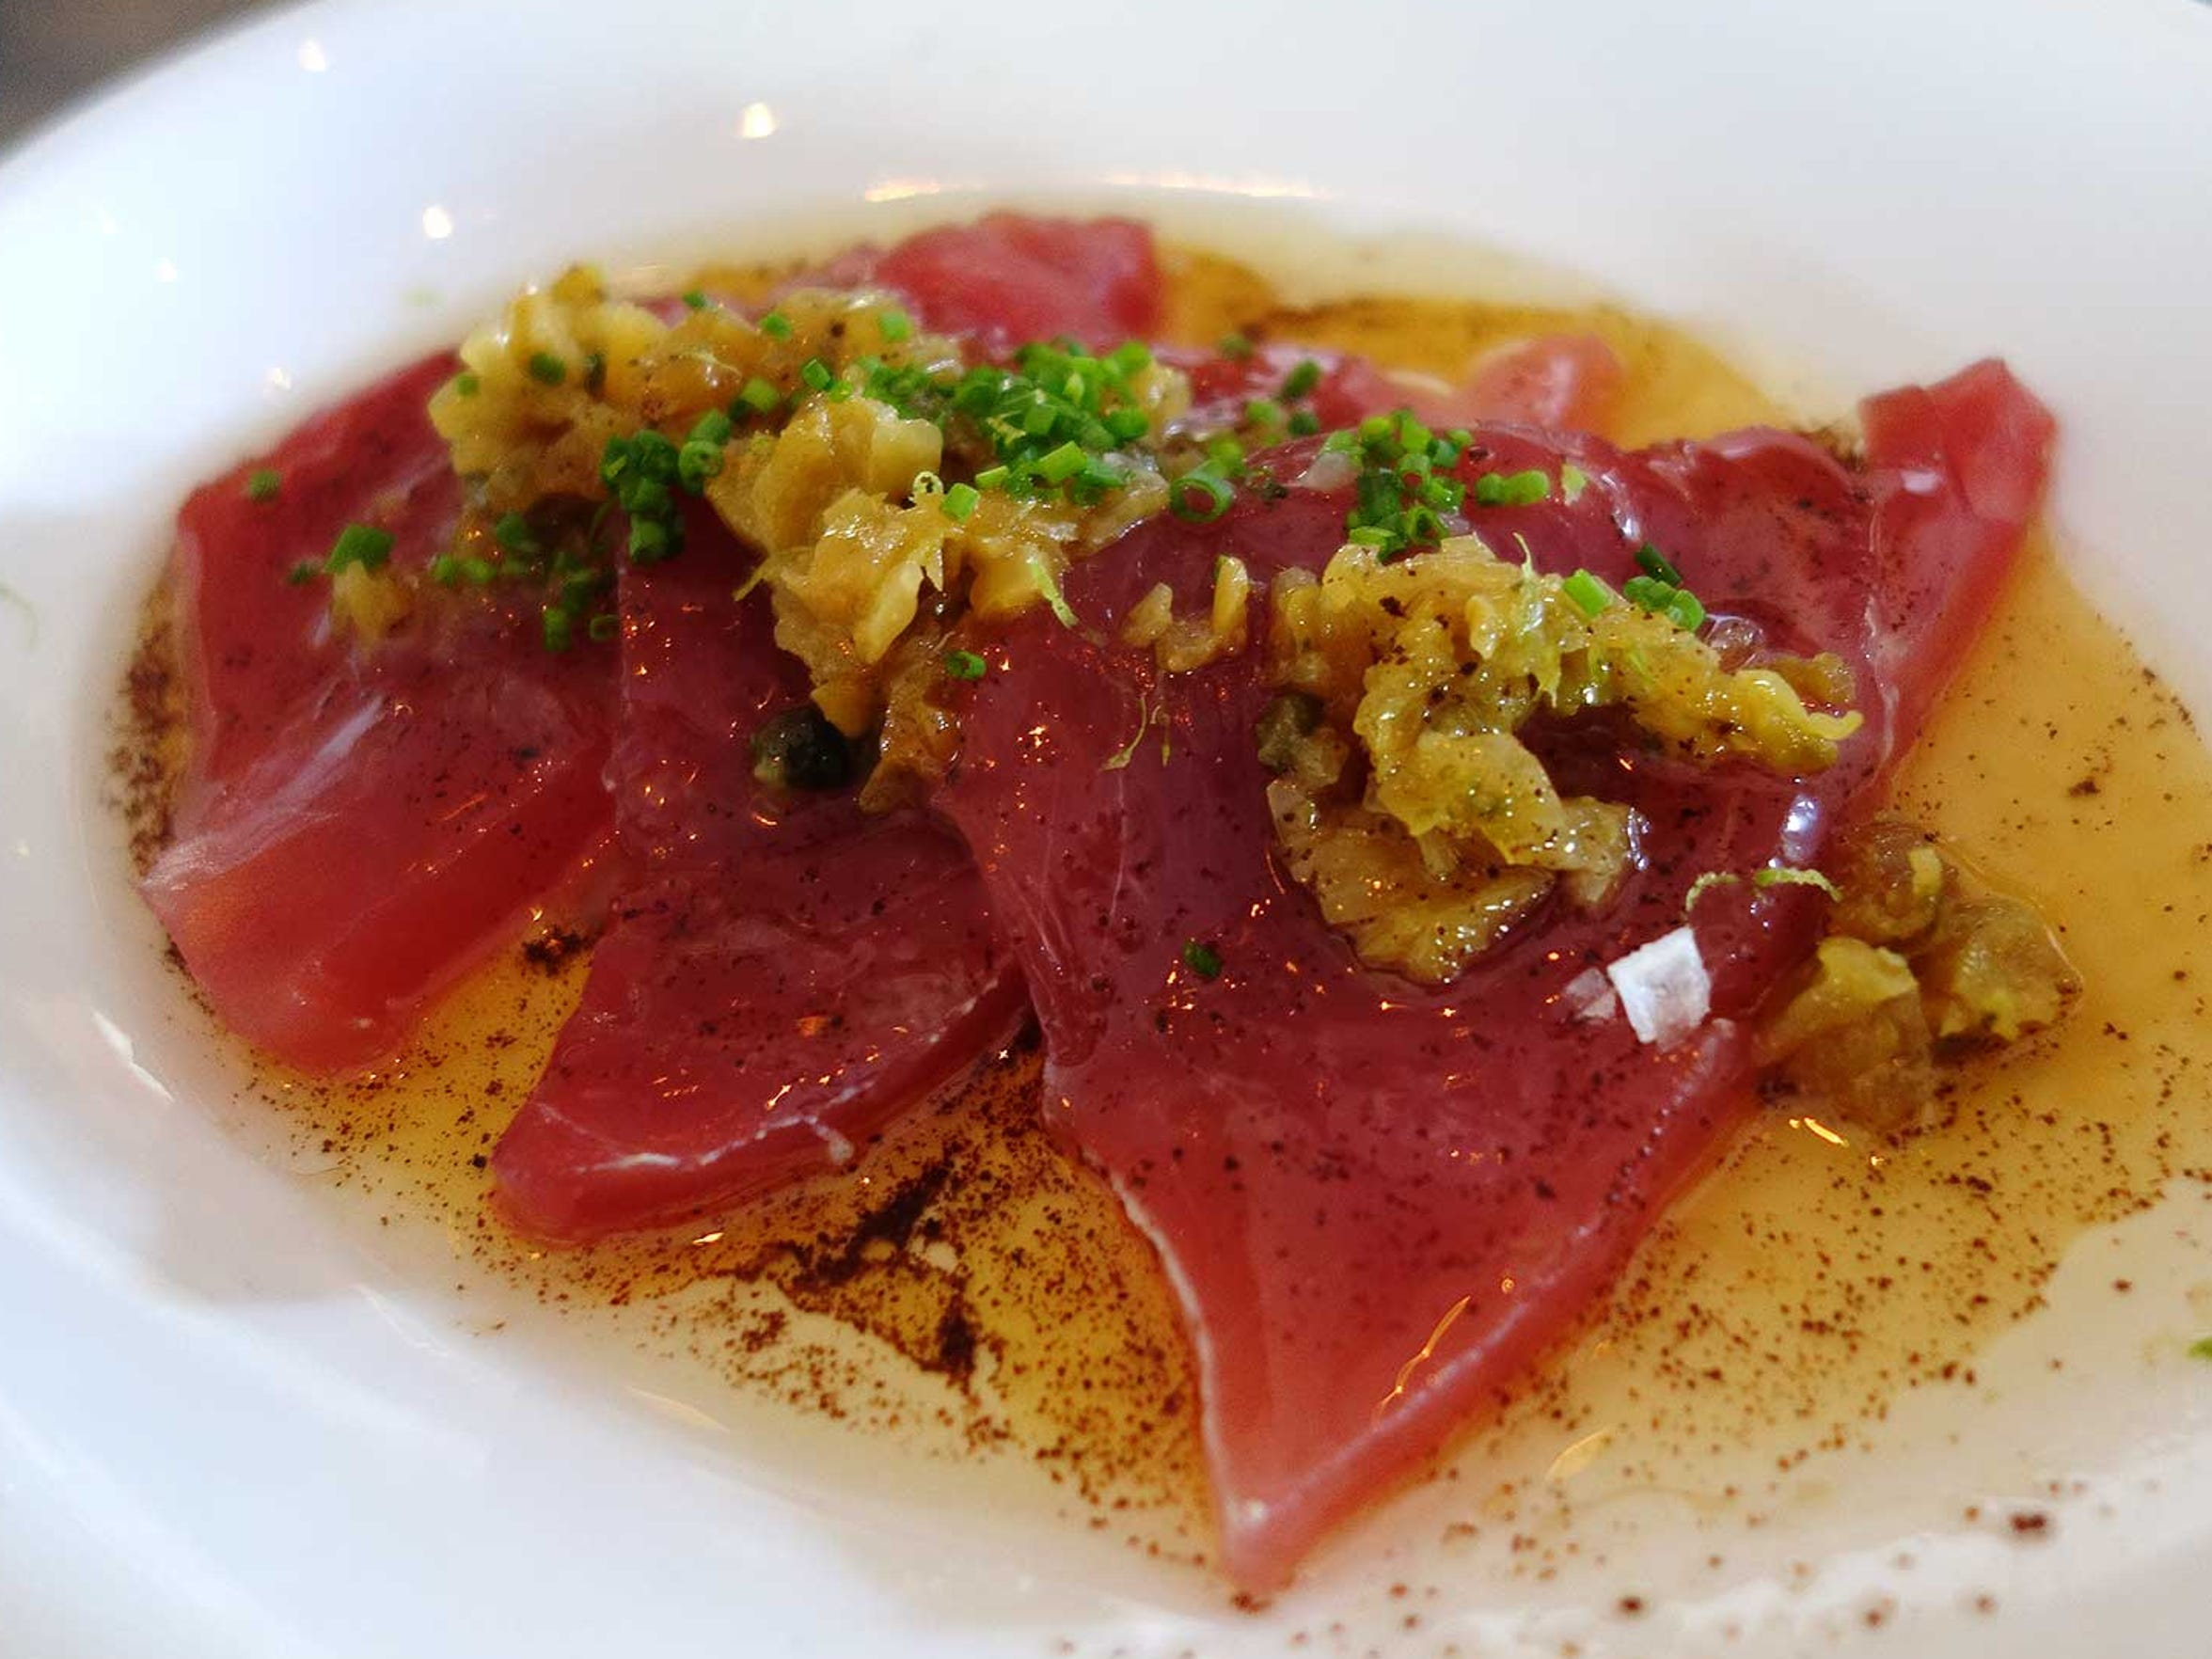 Chula yellowfin crudo with brown butter, fish sauce vinaigrette and golden raisin caper relish at The Gladly's raw bar.